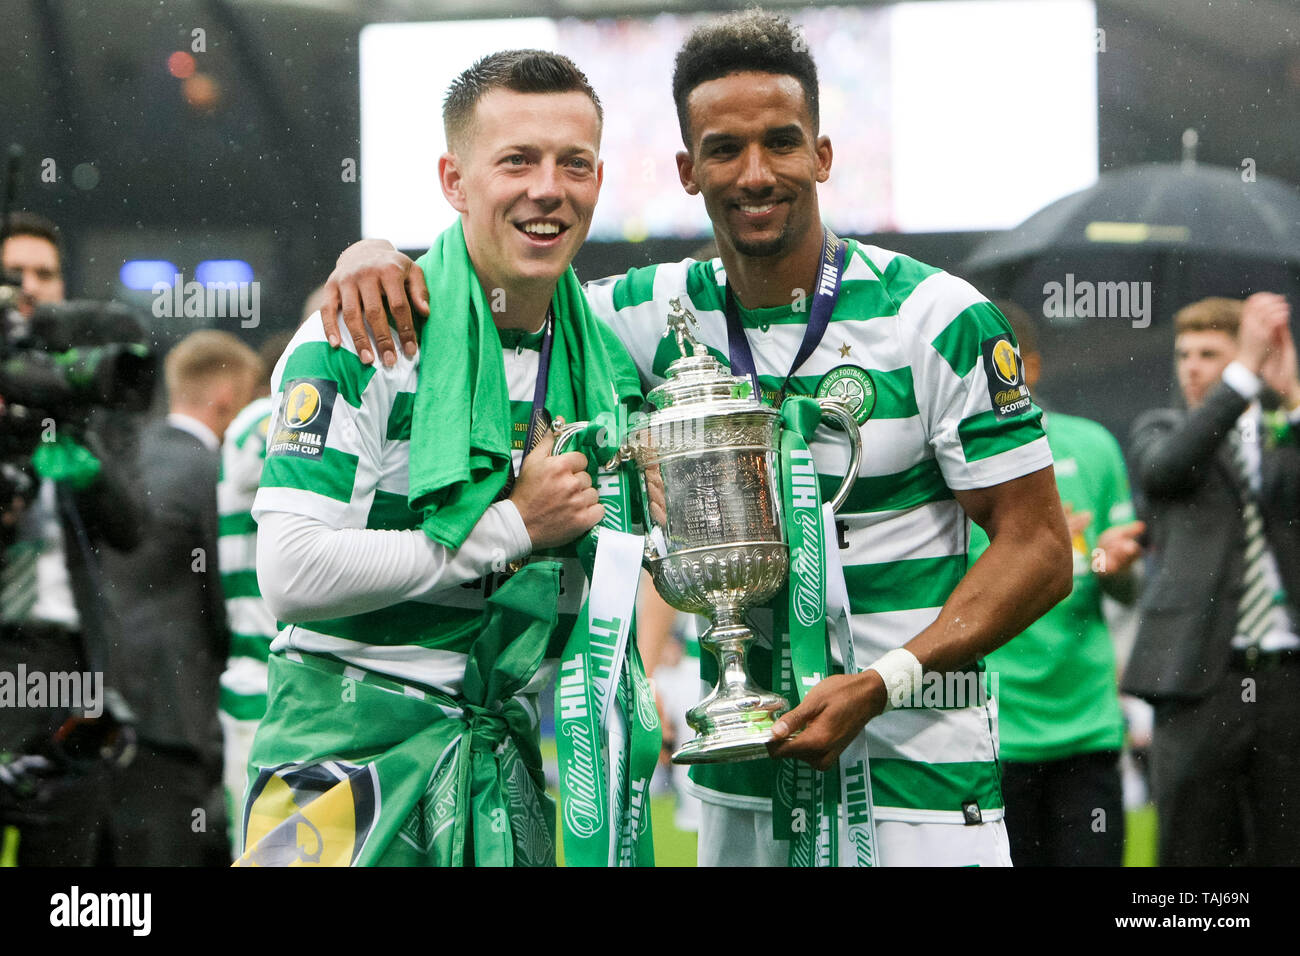 Glasgow, Scotland, May 25th 2019. Callum McGregor of Celtic and Scott Sinclair of Celtic with the Scottish Cup after the William Hill Scottish Cup final between Celtic and Hearts at Hampden Park on May 25th 2019 in Glasgow, Scotland. Editorial use only, licence required for commercial use. No use in Betting, games or a single club/league/player publication. Credit: Scottish Borders Media/Alamy Live News - Stock Image